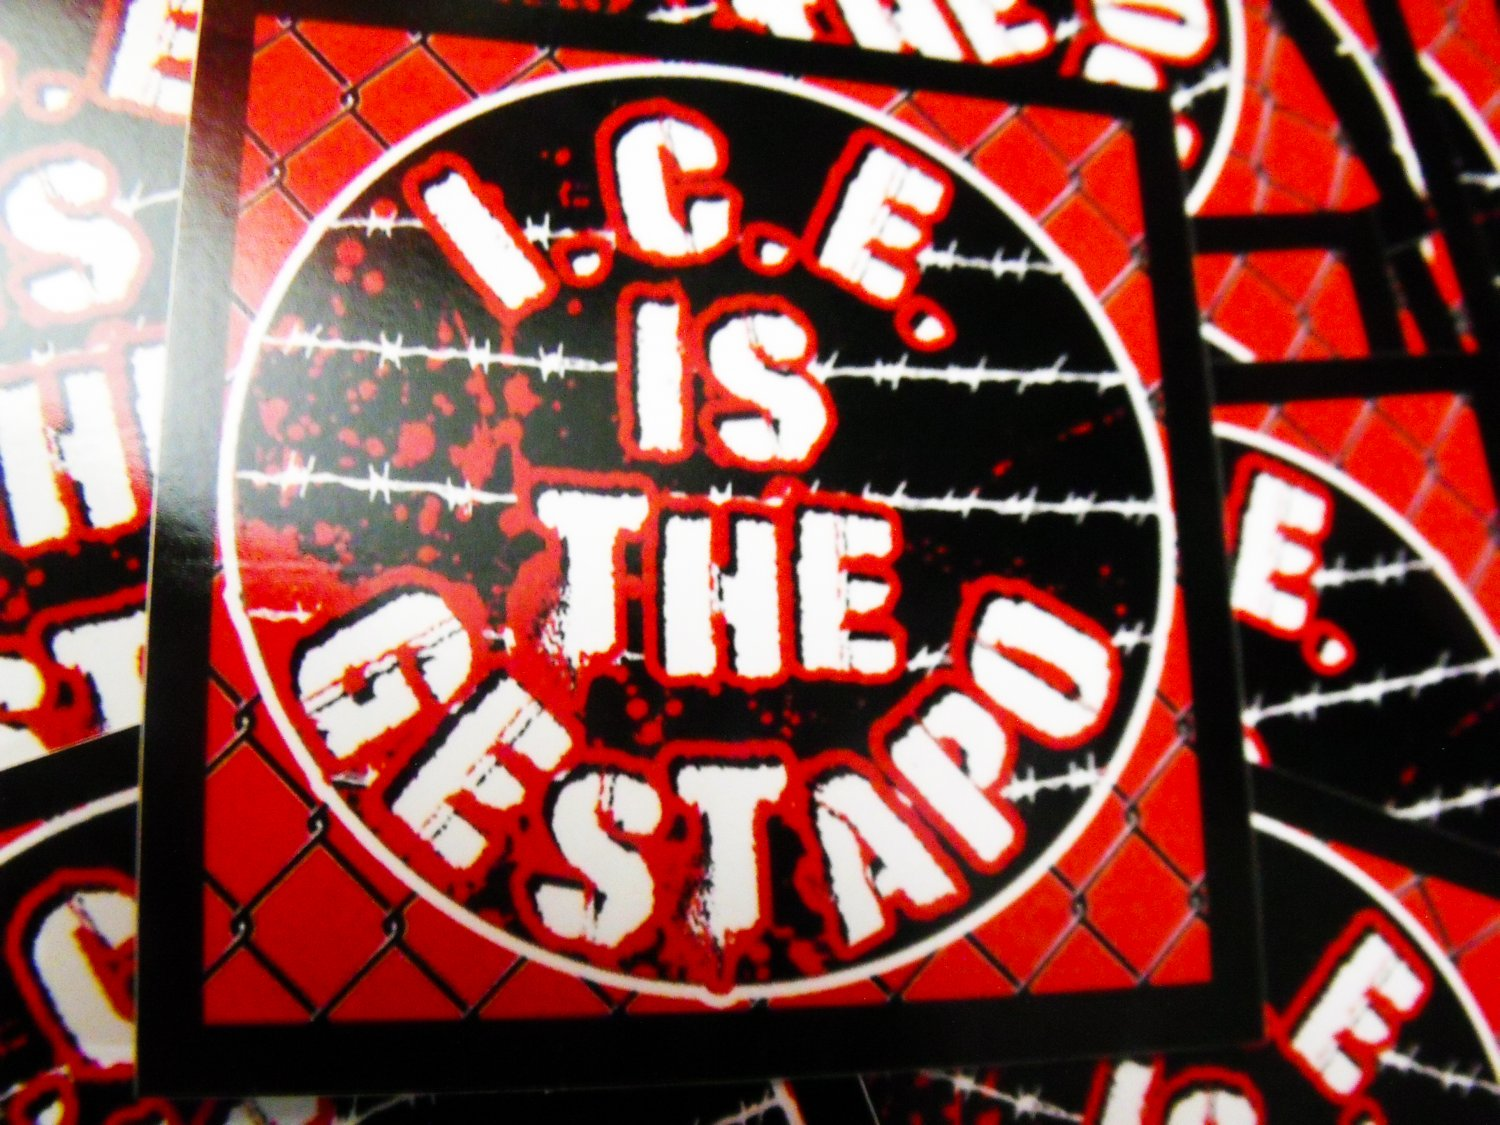 "300 I.C.E. IS THE GESTAPO 2.5"" stickers"